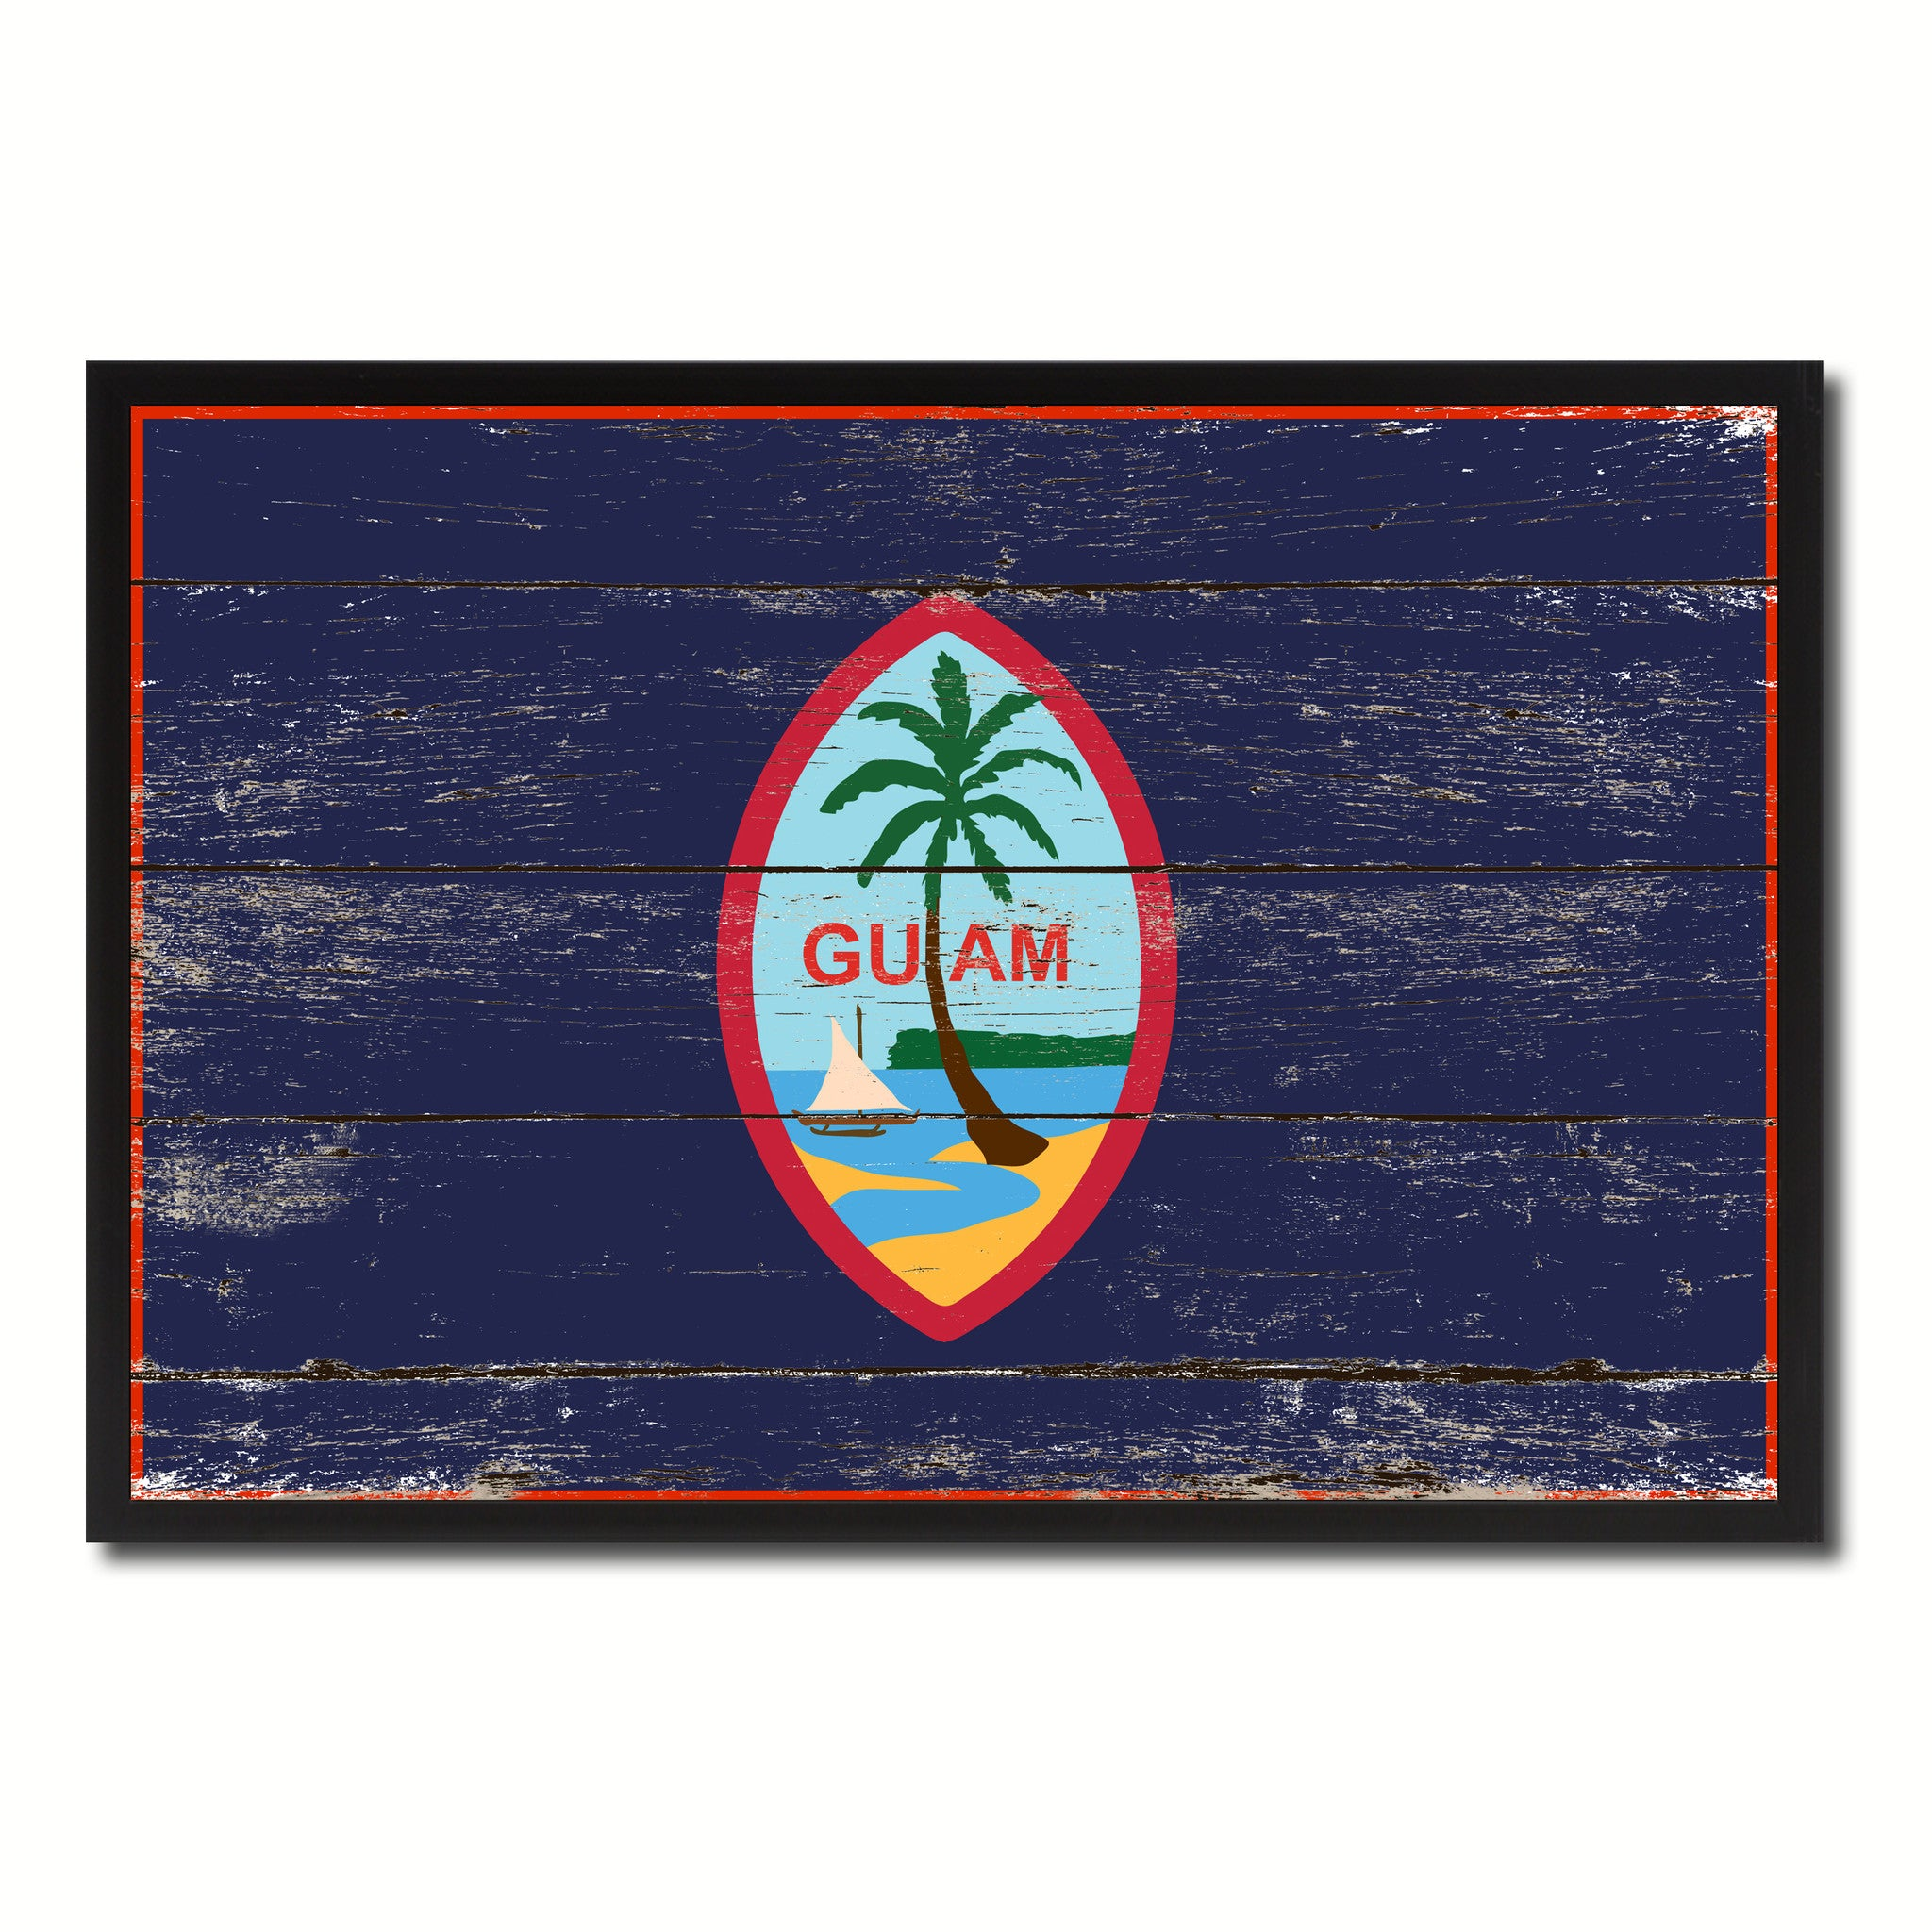 Guam US Territory Flag Vintage Canvas Print with Black Picture Frame Home Decor Wall Art Collectible Decoration Artwork Gifts